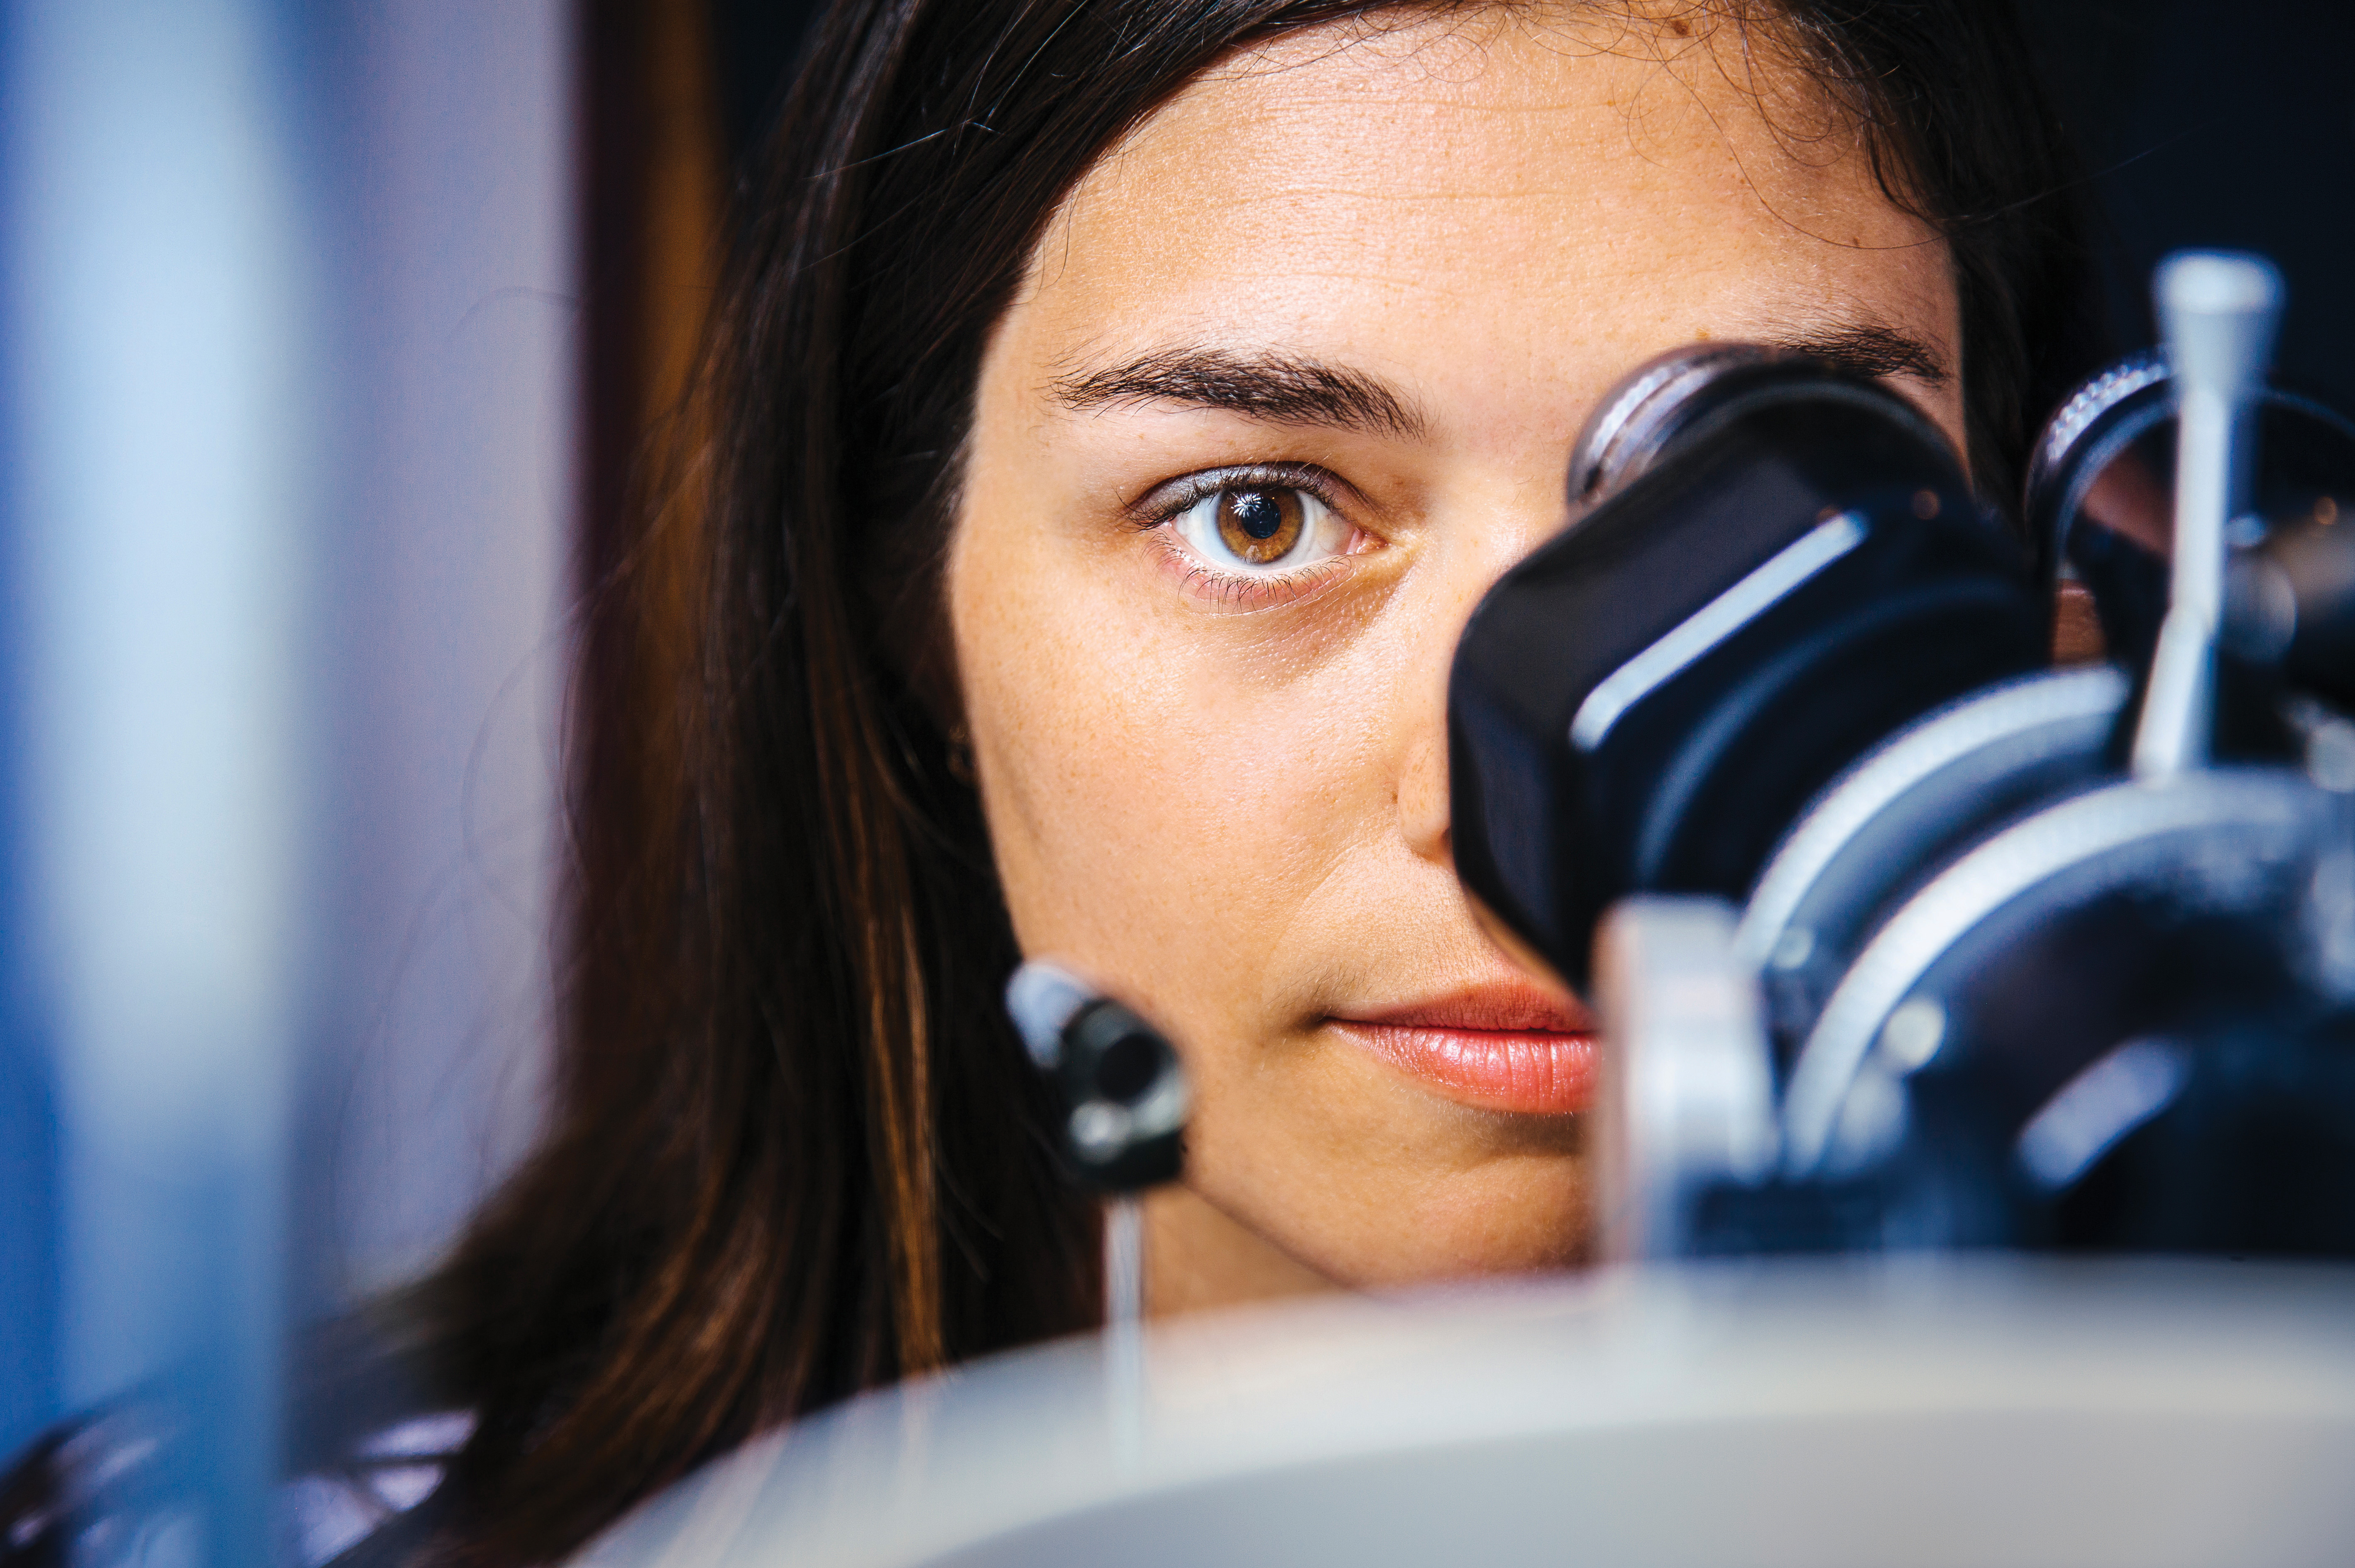 Photo of a young woman looking through the viewer on a piece of optometry equipment.